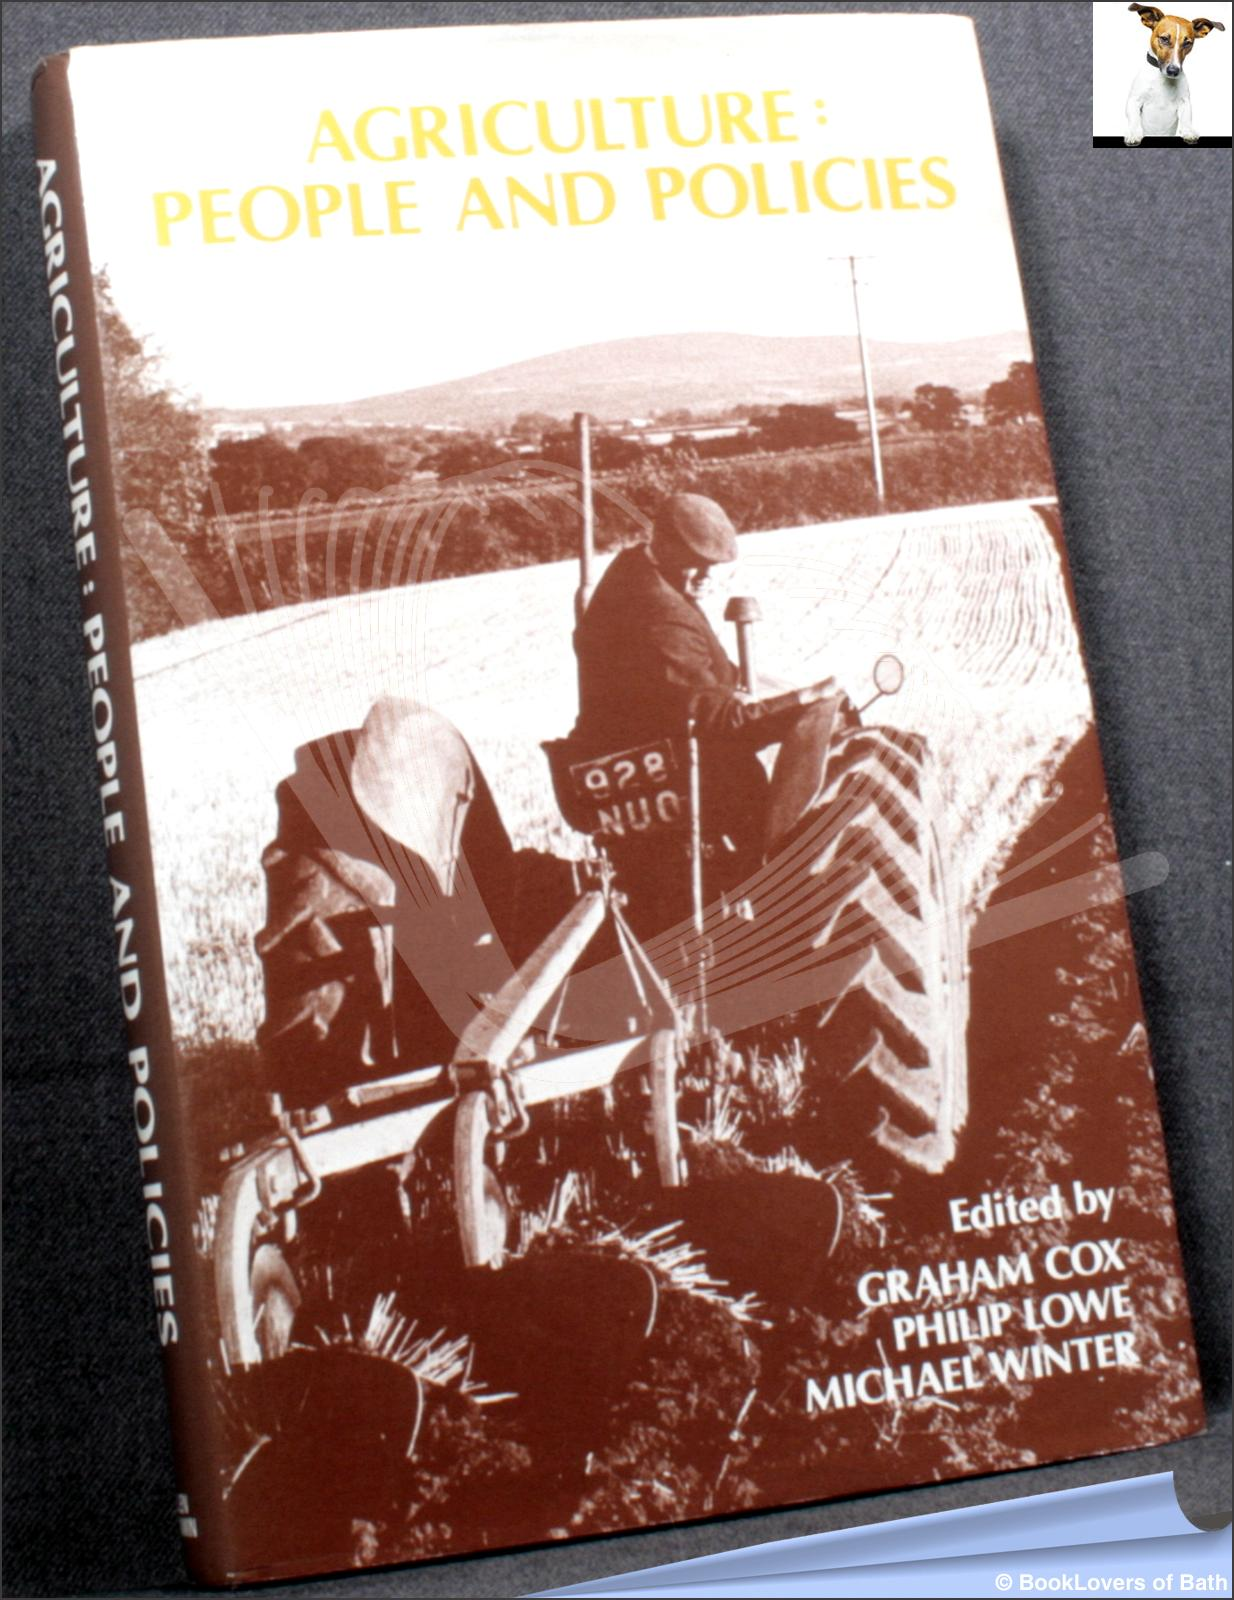 Agriculture: People and Policies - Edited by Graham Cox, Philip Lowe & Michael Winter